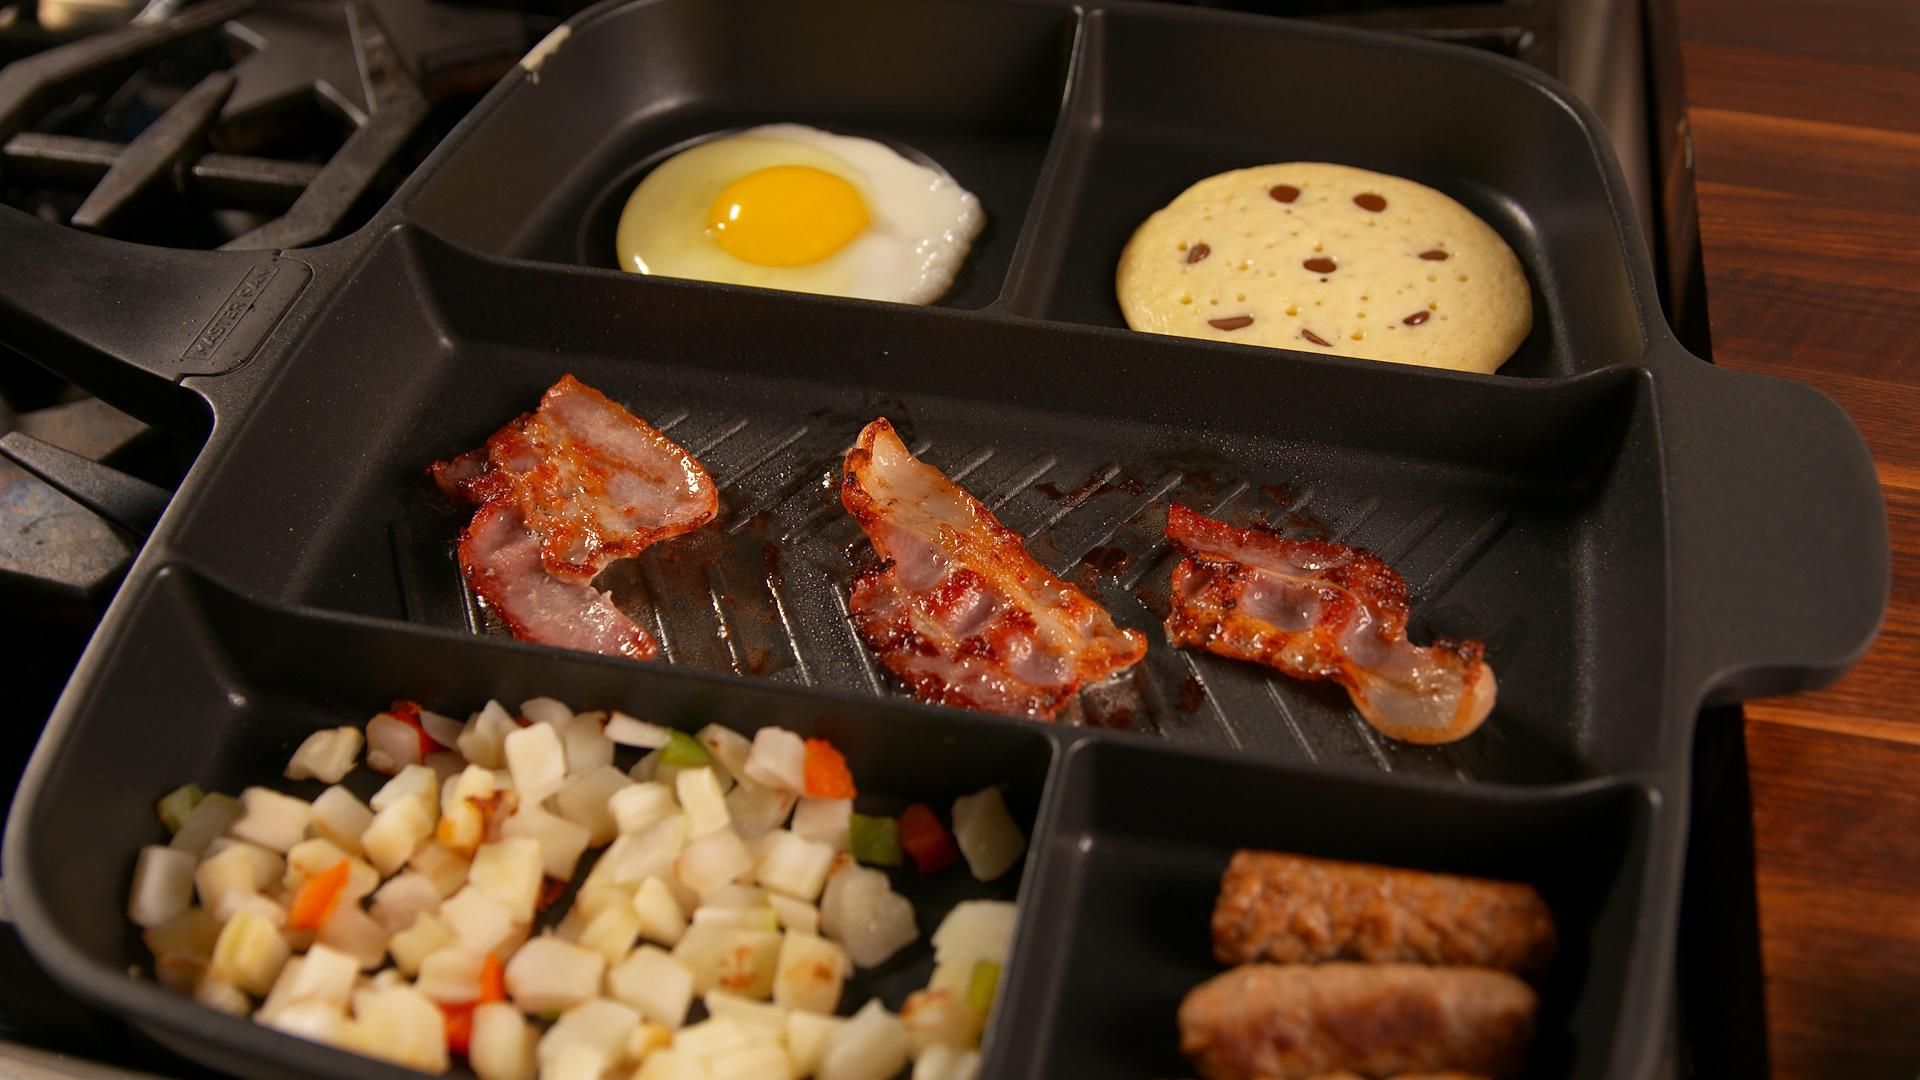 This Ingenious Skillet Lets You Cook a Whole Meal in One Pan